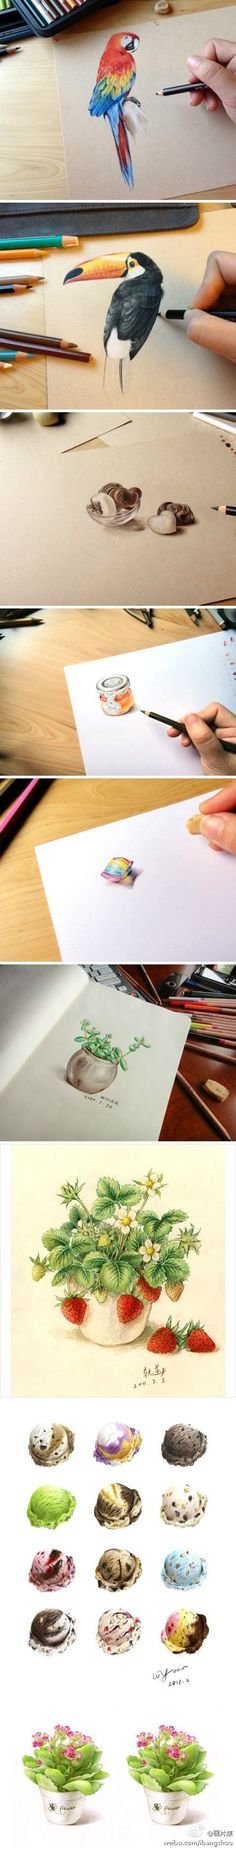 Colored pencil drawings of many different subjects and textures.